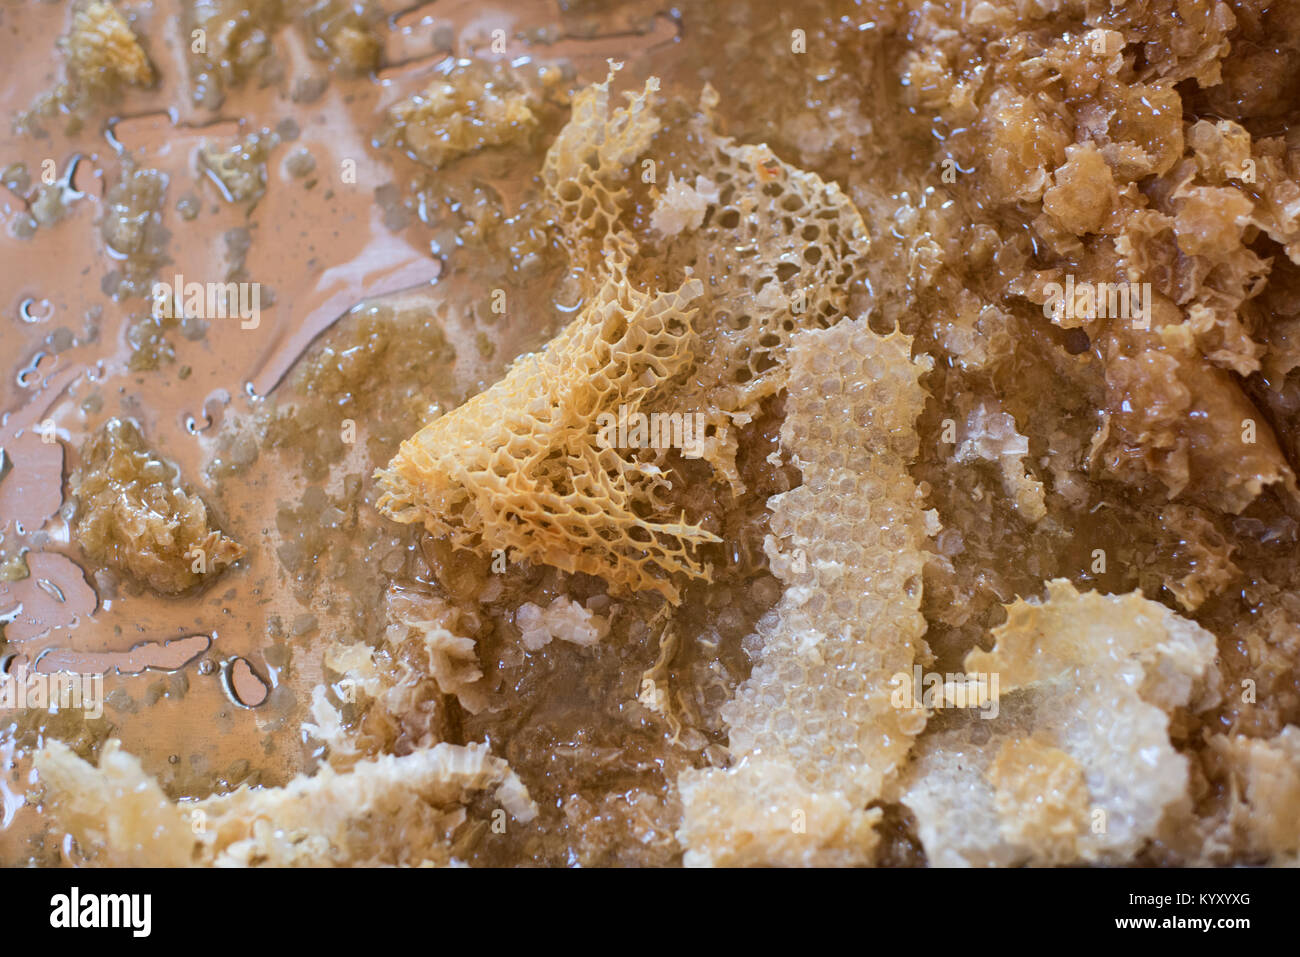 High angle view of honeycomb on metallic structure - Stock Image